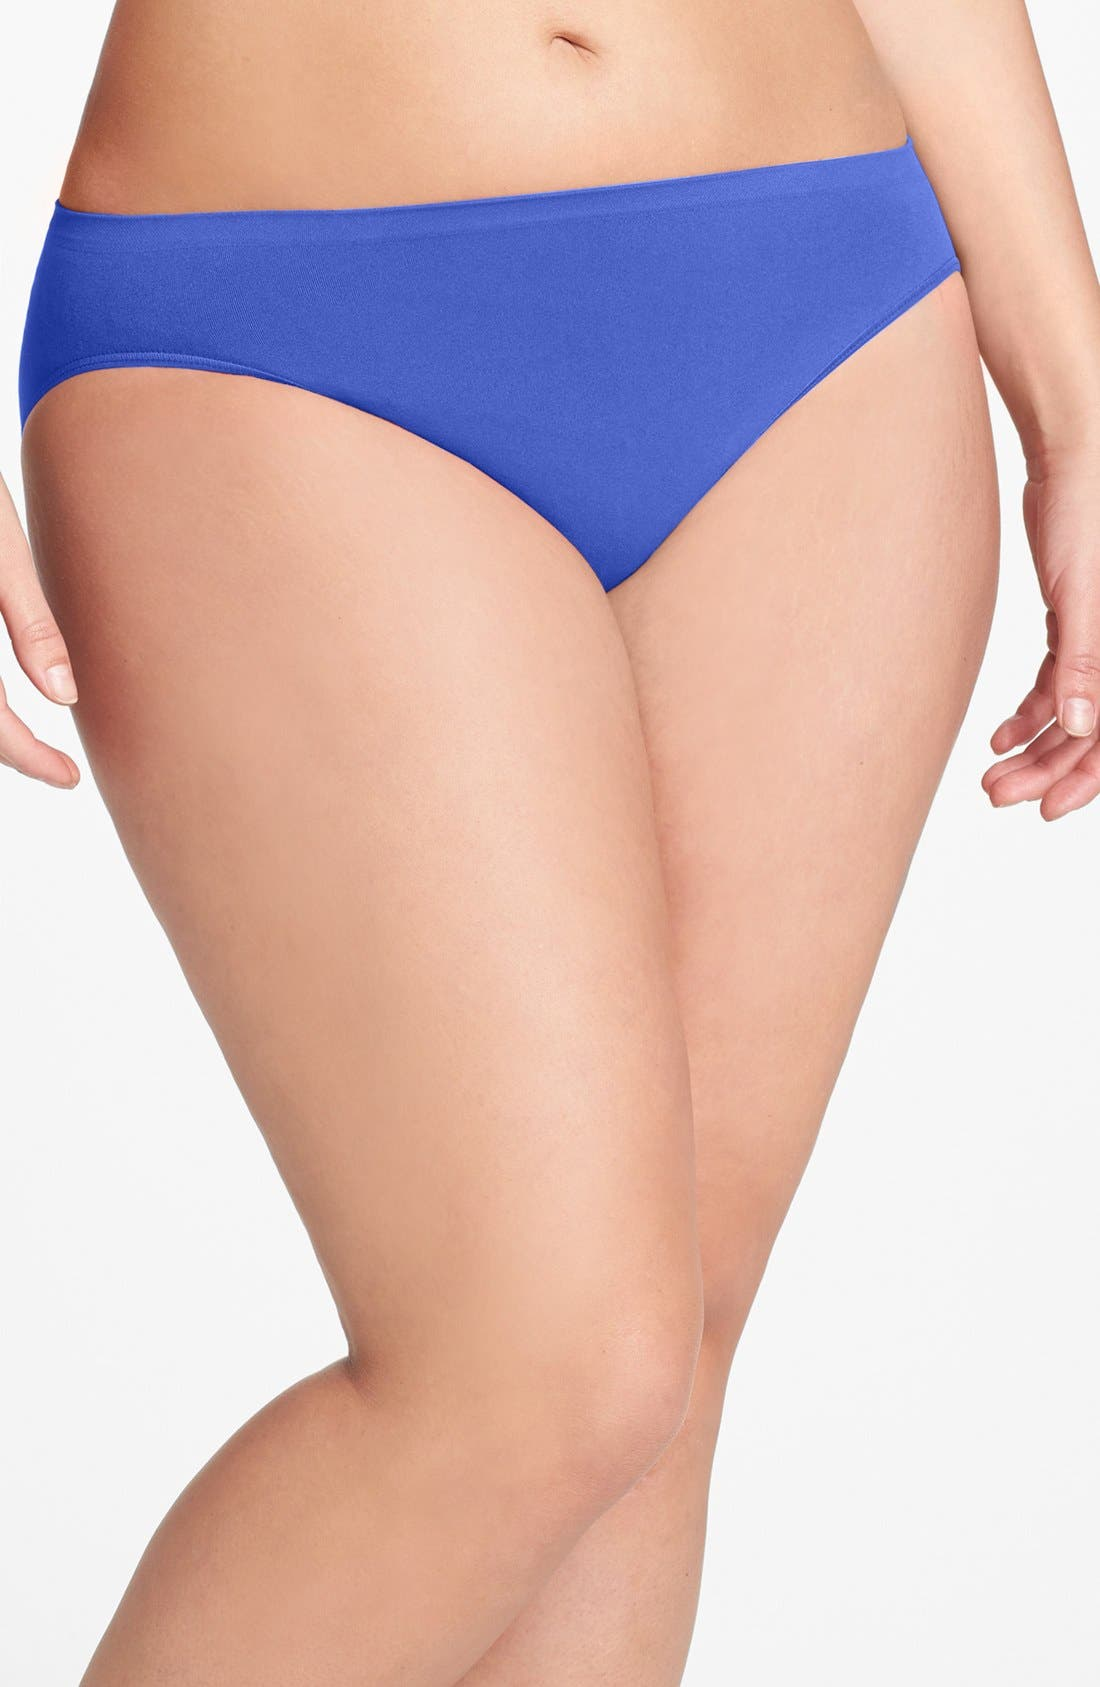 Alternate Image 1 Selected - Shimera Seamless High Cut Panties (Plus Size) (3 for $33)